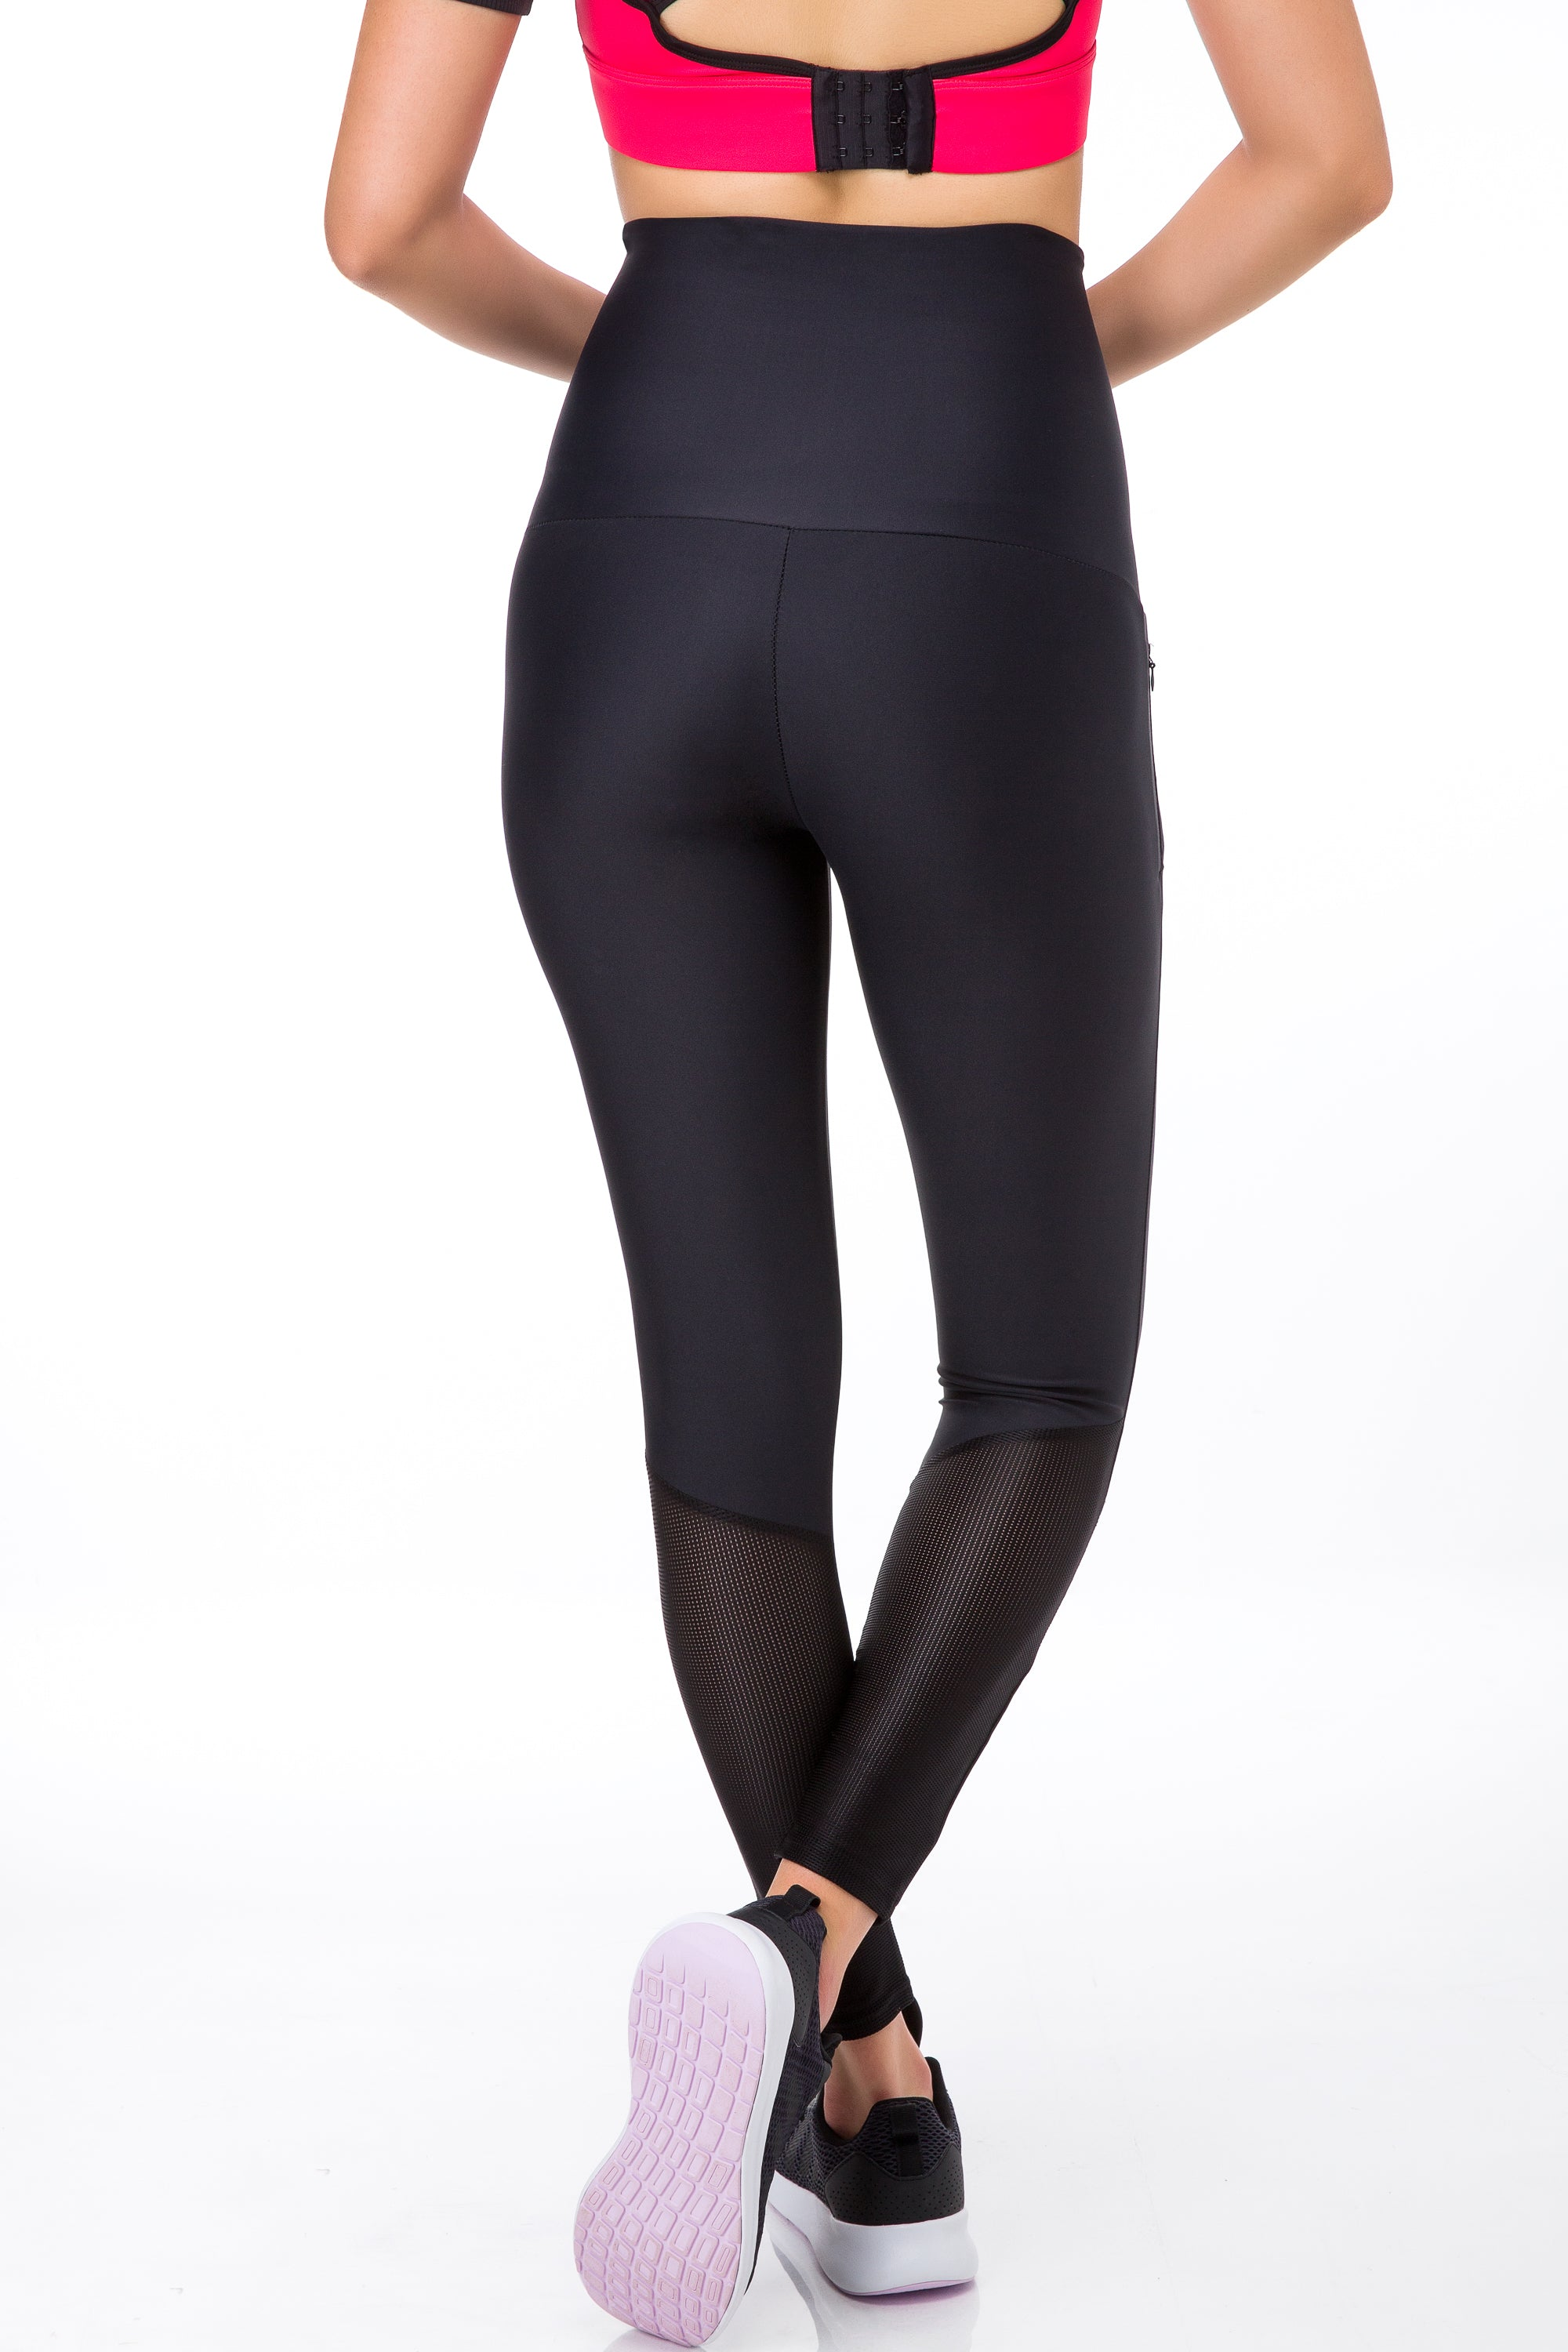 7a2d4d677689 High Impact Champion Tights - Brakefree